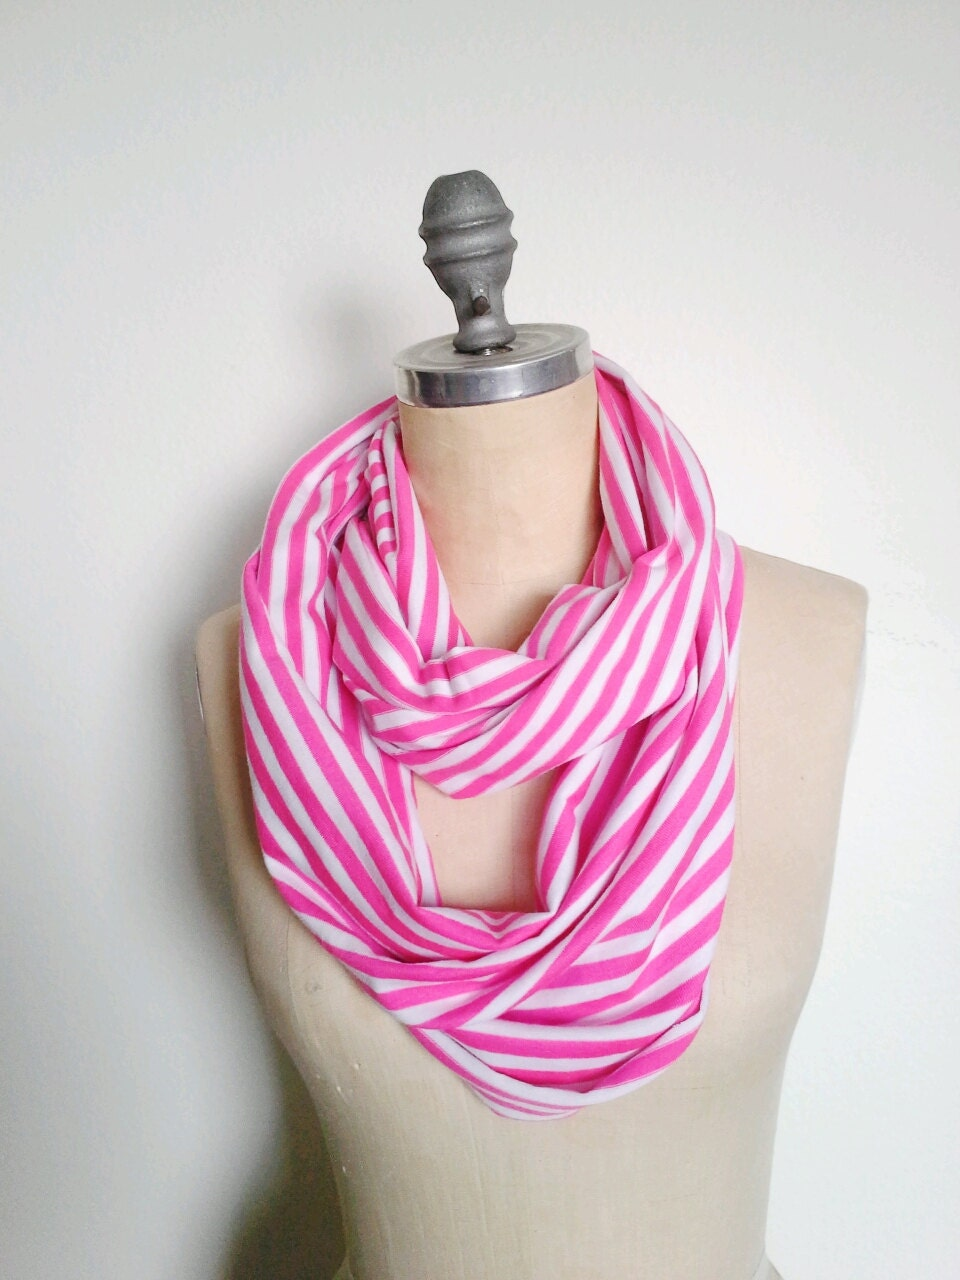 Jersey Infinity Circle Scarf Light Weight White and Pink Stripe - SevenWhiteRabbits